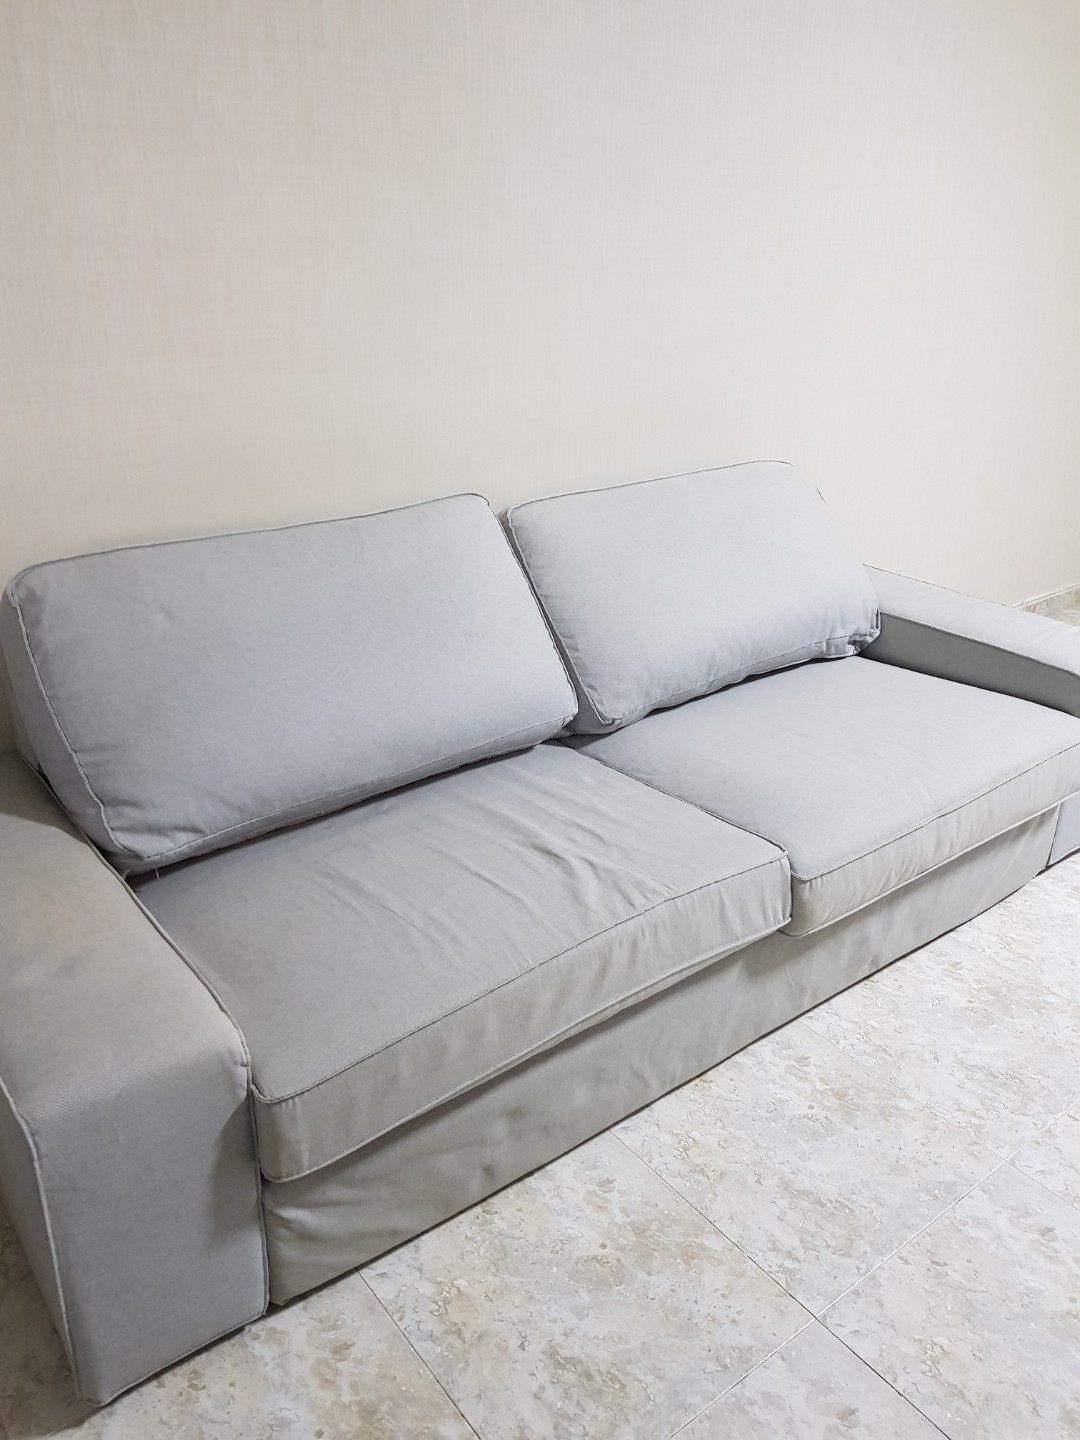 Canape Convertible Ikea 399 Euros Image Of Ikea Sofa Bed Prices Uk Sofa Beds Corner Sofa Beds Futons